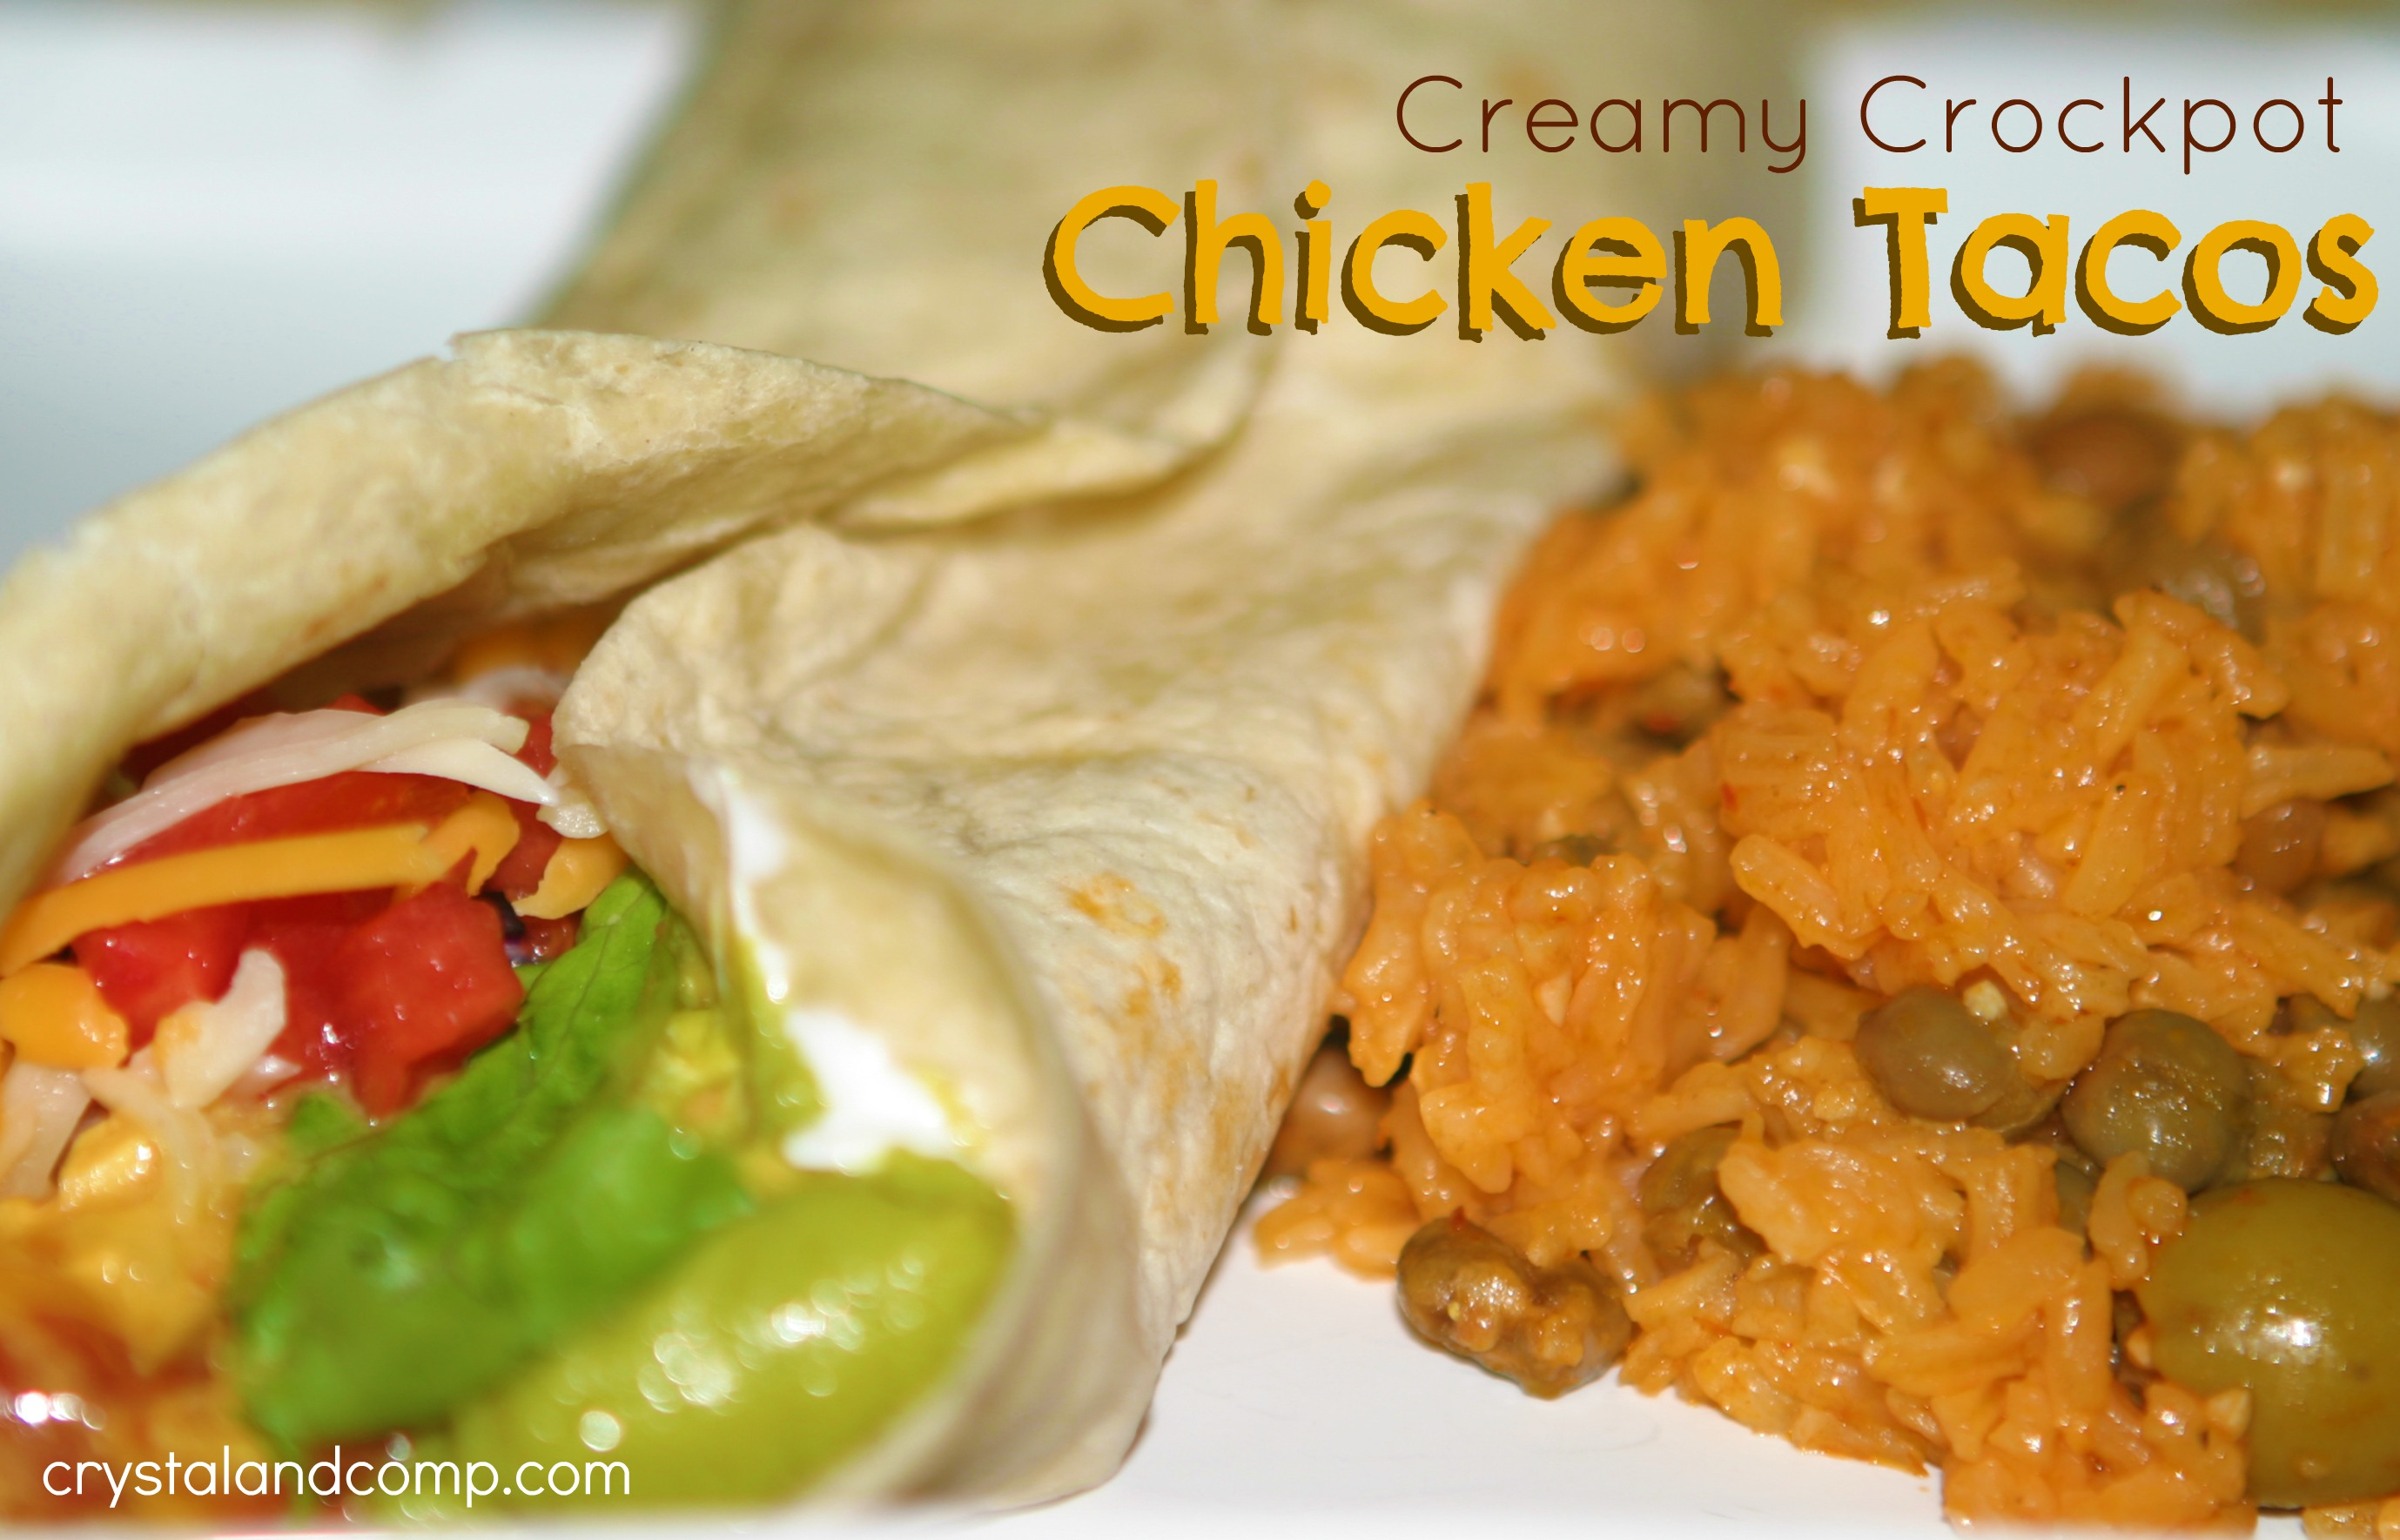 Easy Recipes: Creamy Crockpot Chicken Tacos